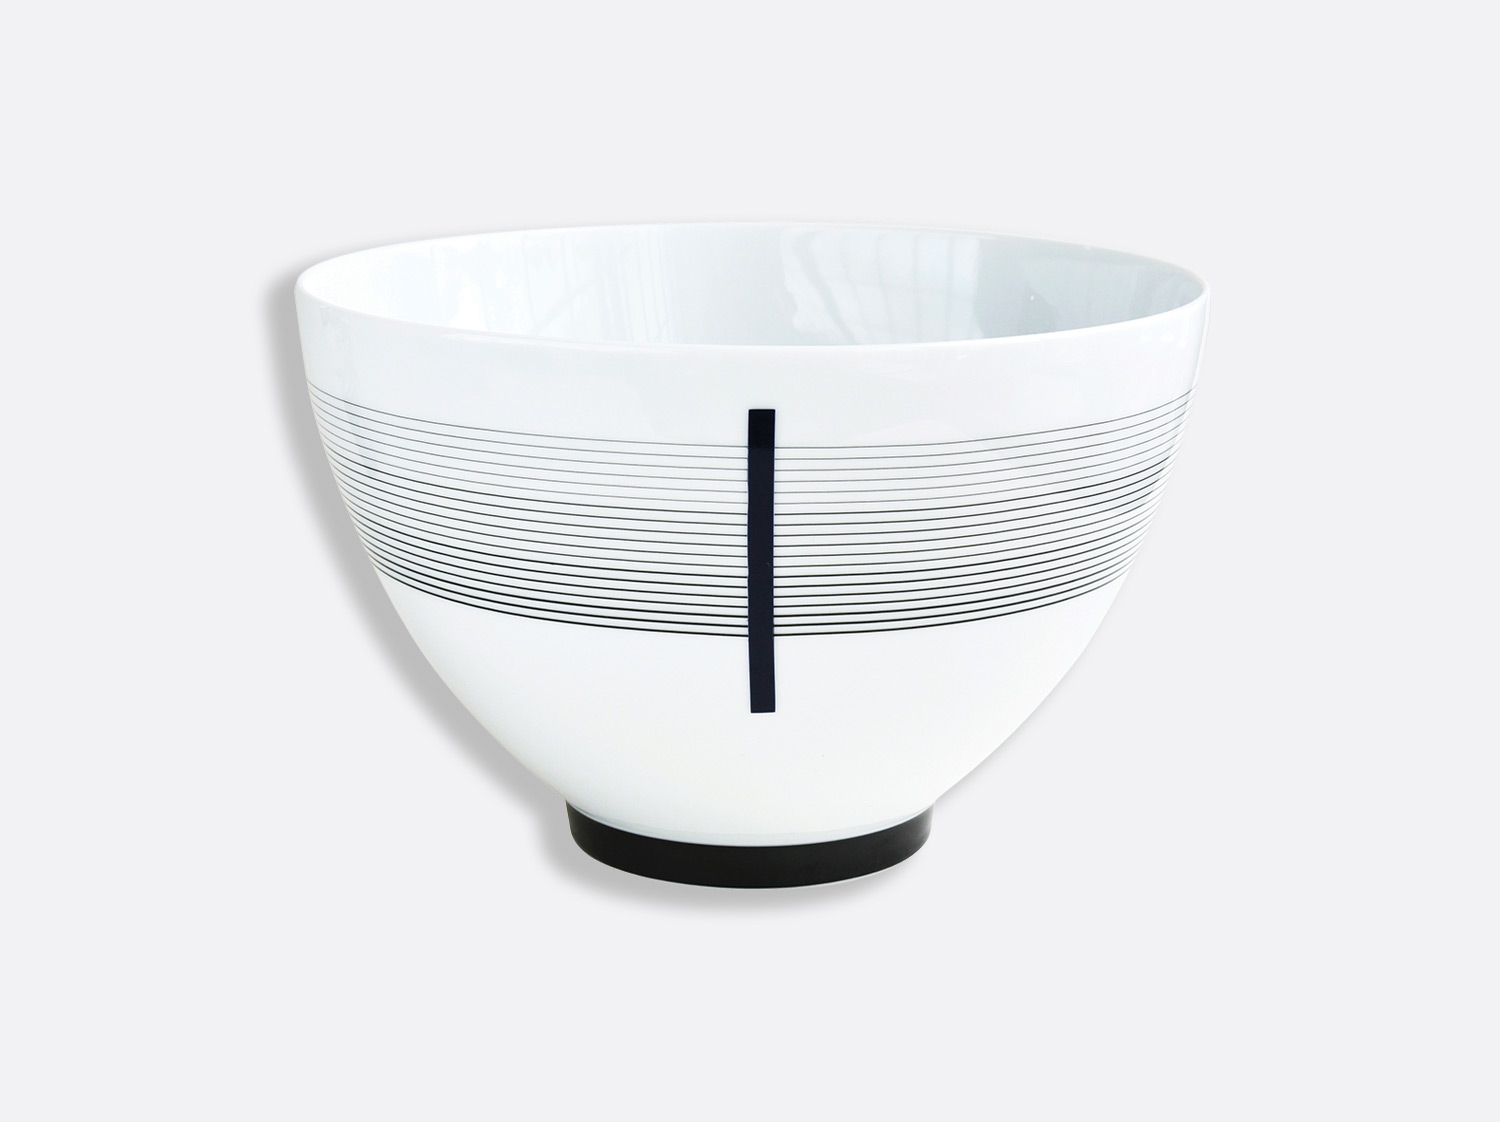 Saladier haut 27 cm 4,2 L en porcelaine de la collection OSCAR Bernardaud